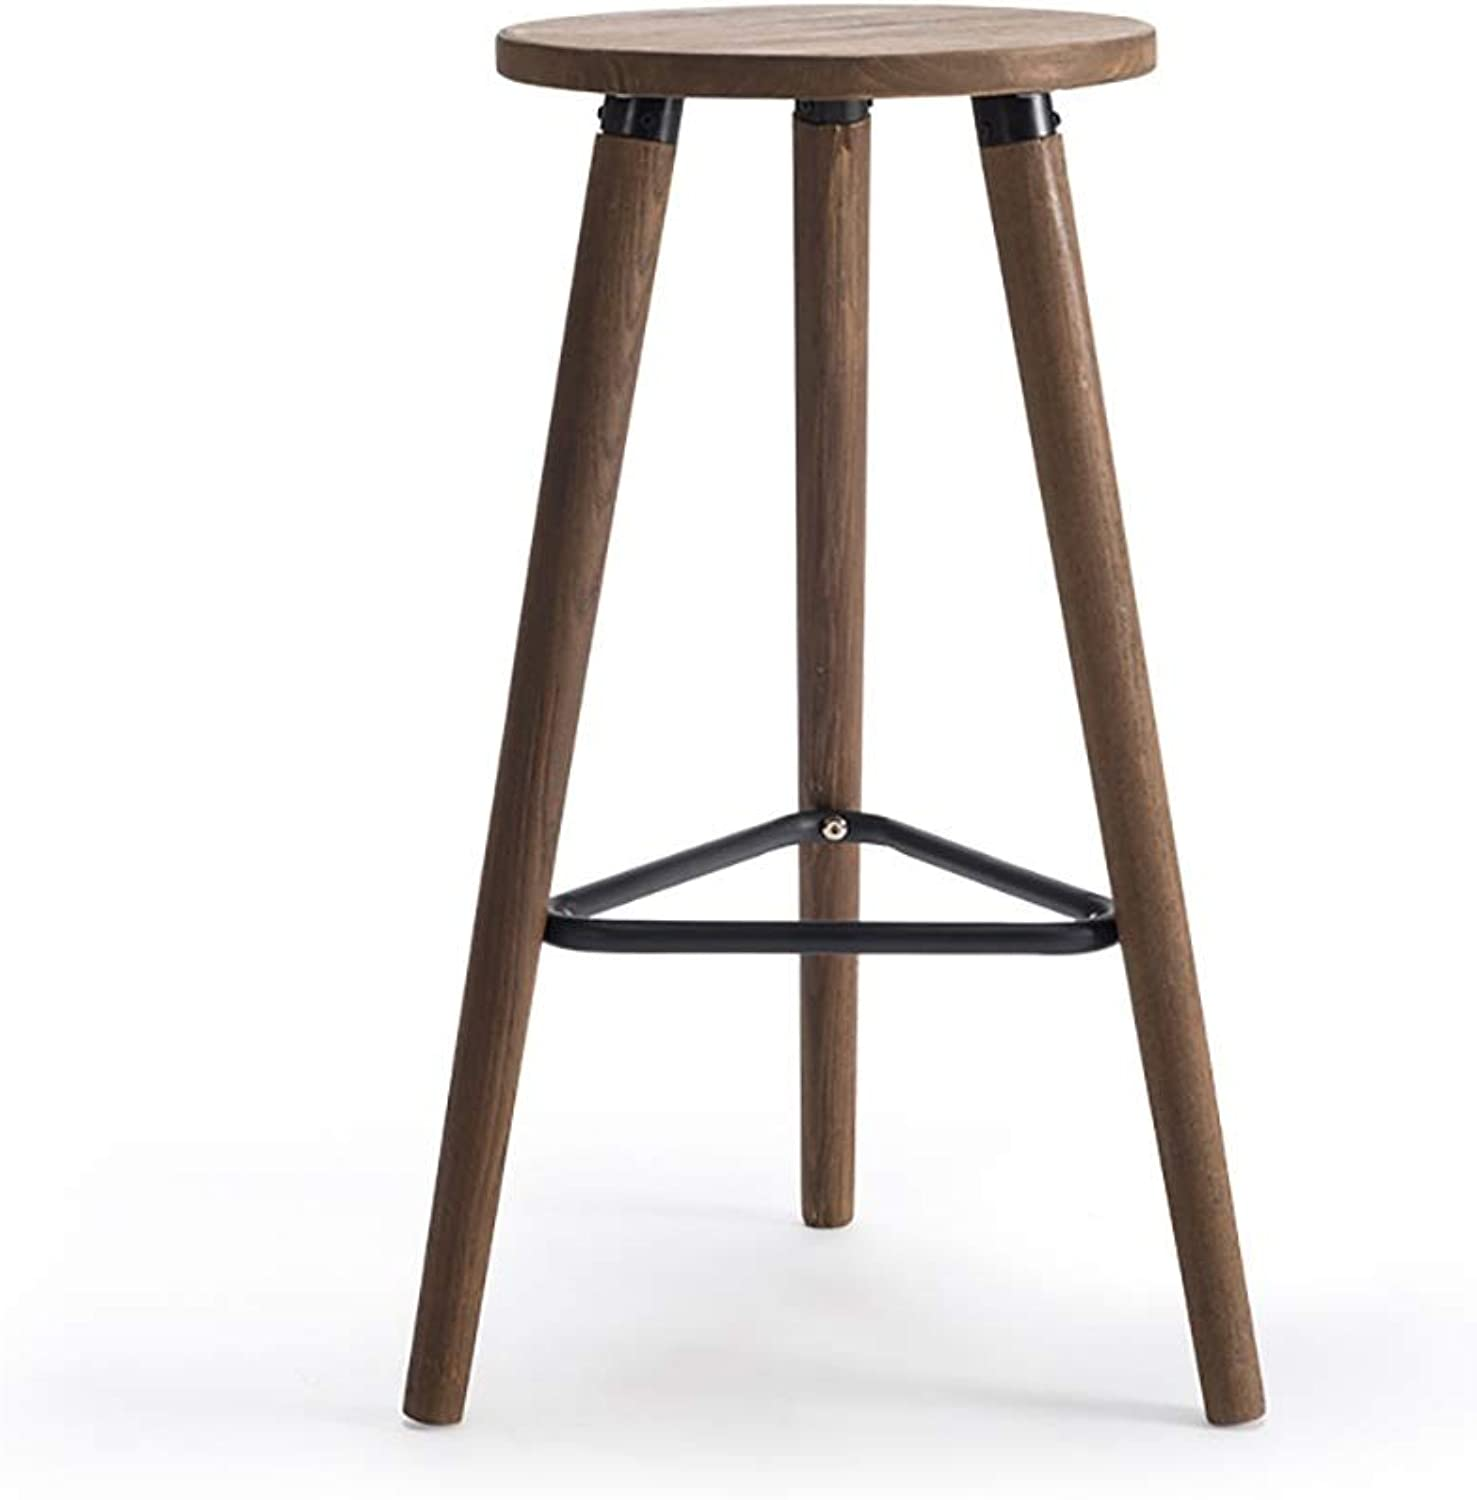 Solid Wood Bar Chair High Stool Bar Table Chair Simple Modern Bar Cafe Business Hall Bar Stool Size  42×42×66.5cm